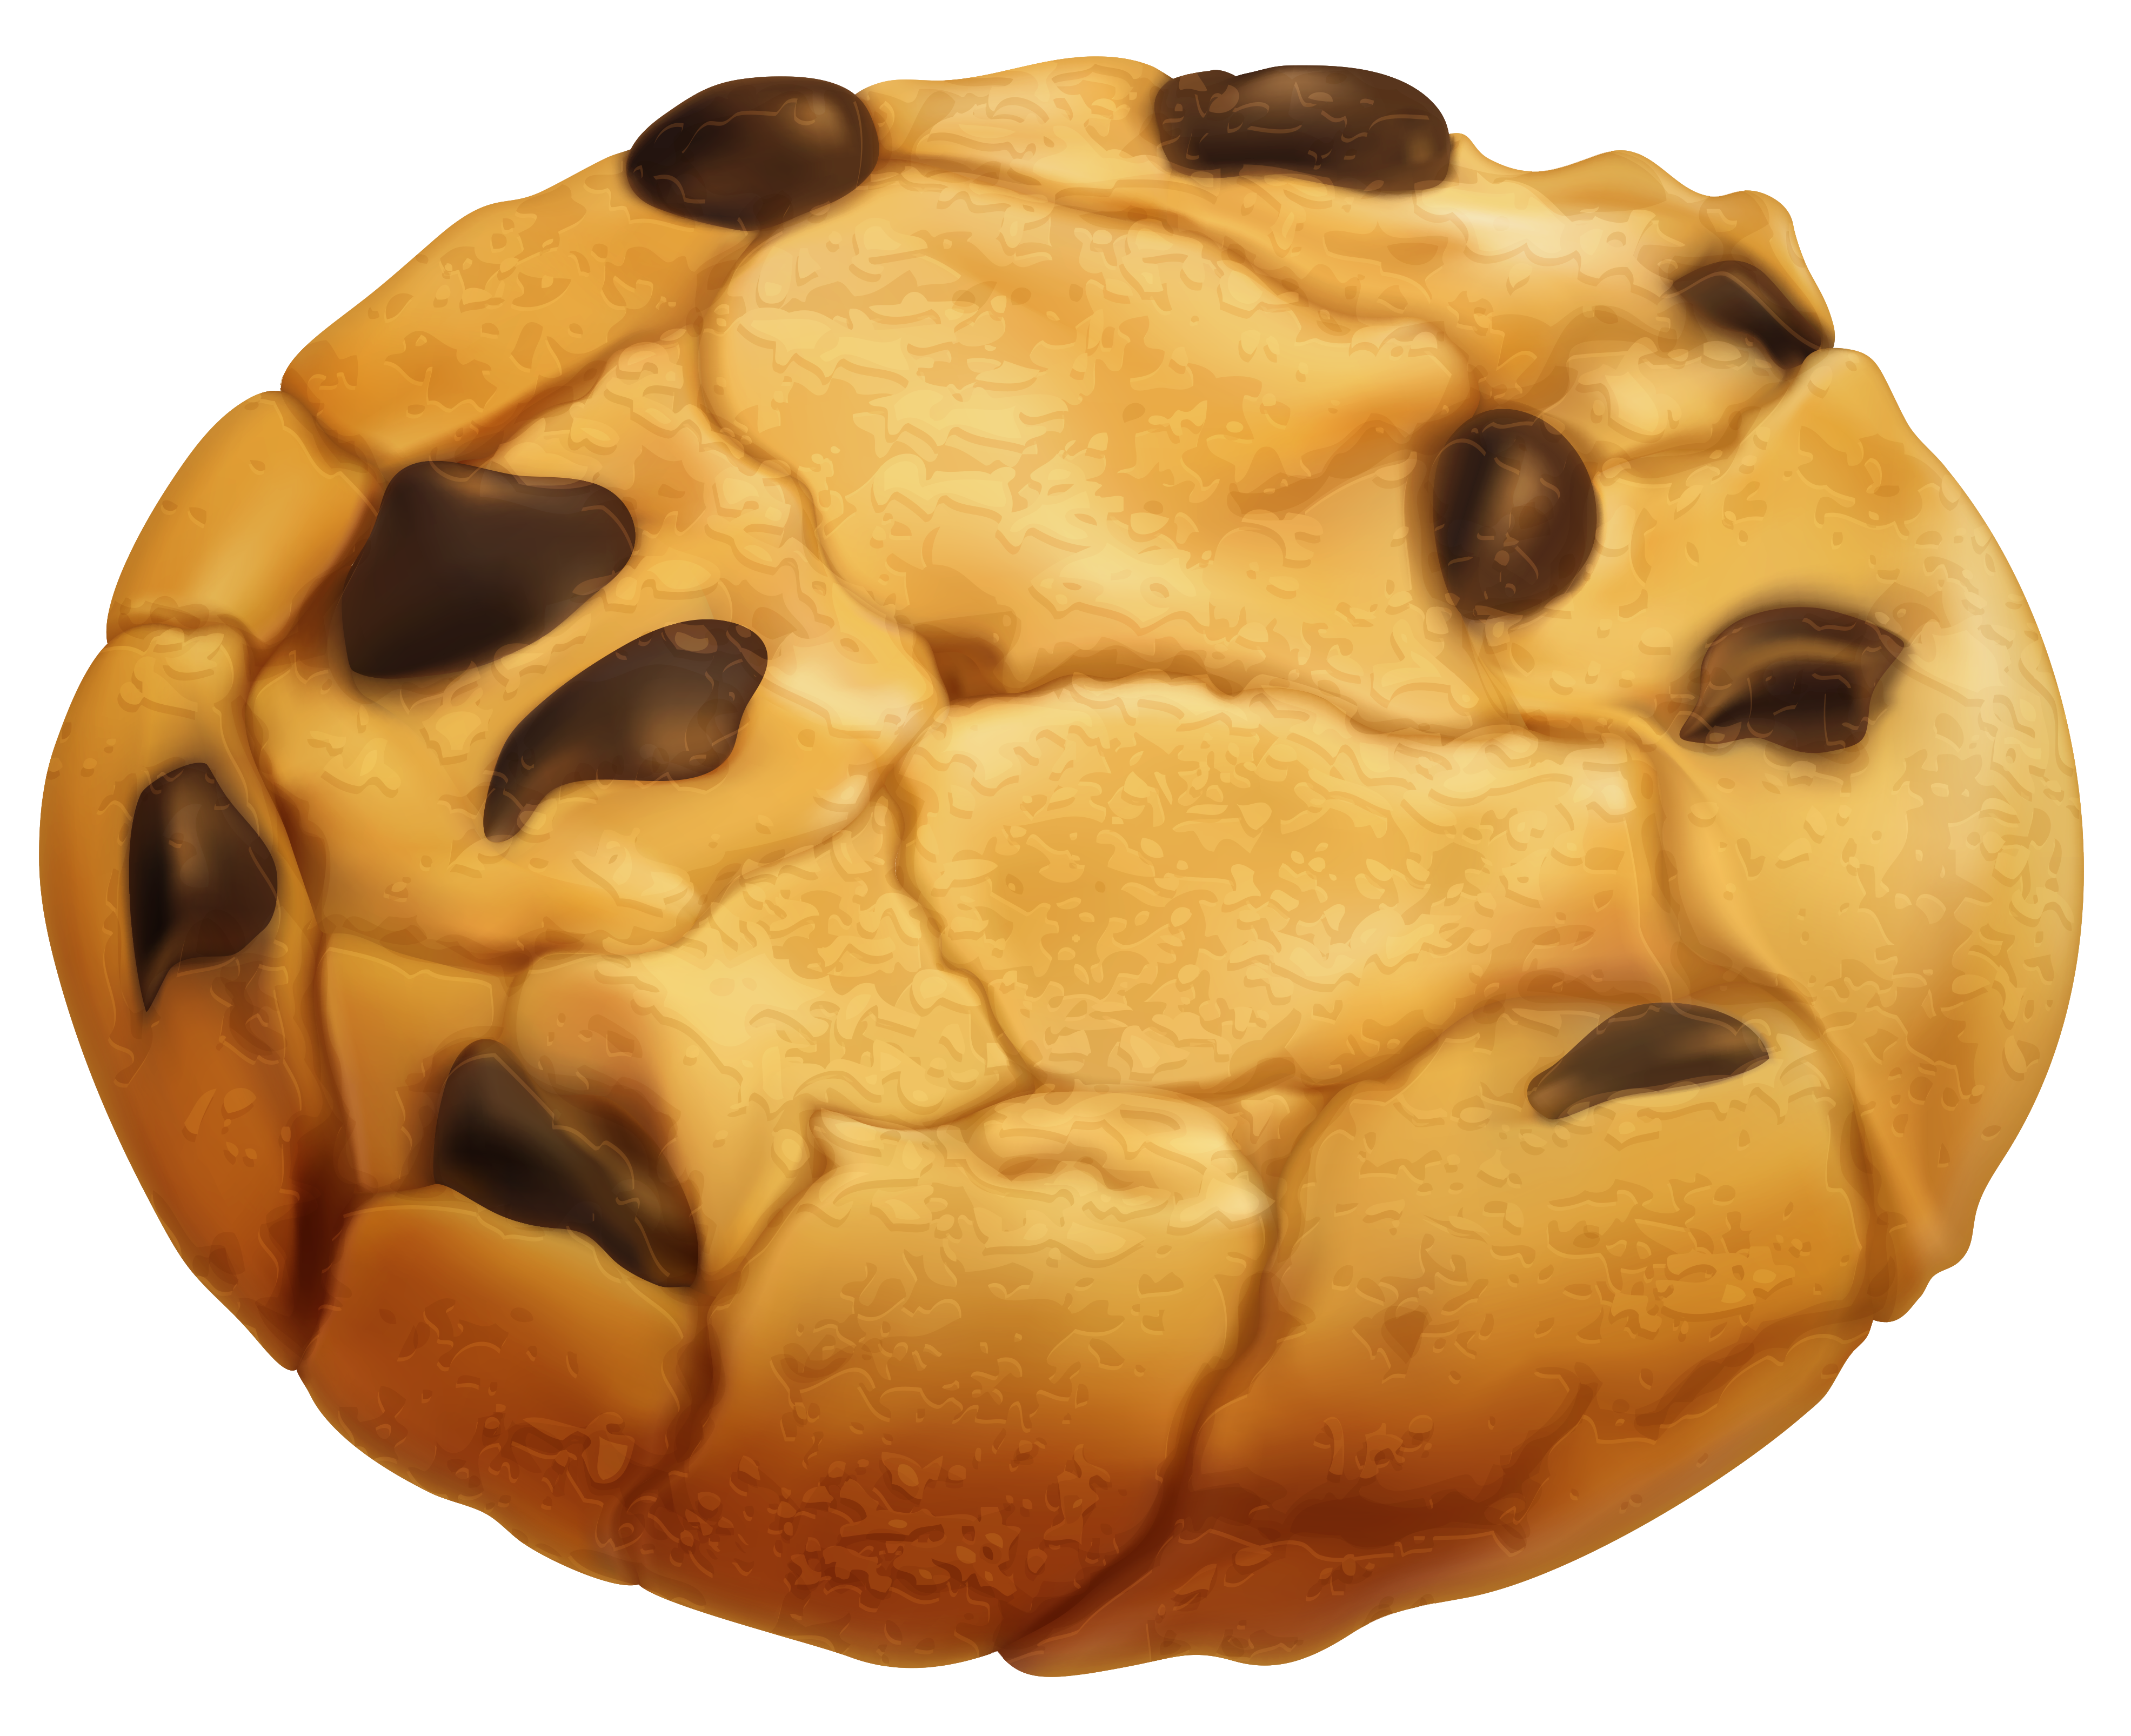 Cookie with chocolate png. Baked goods clipart coockie banner royalty free